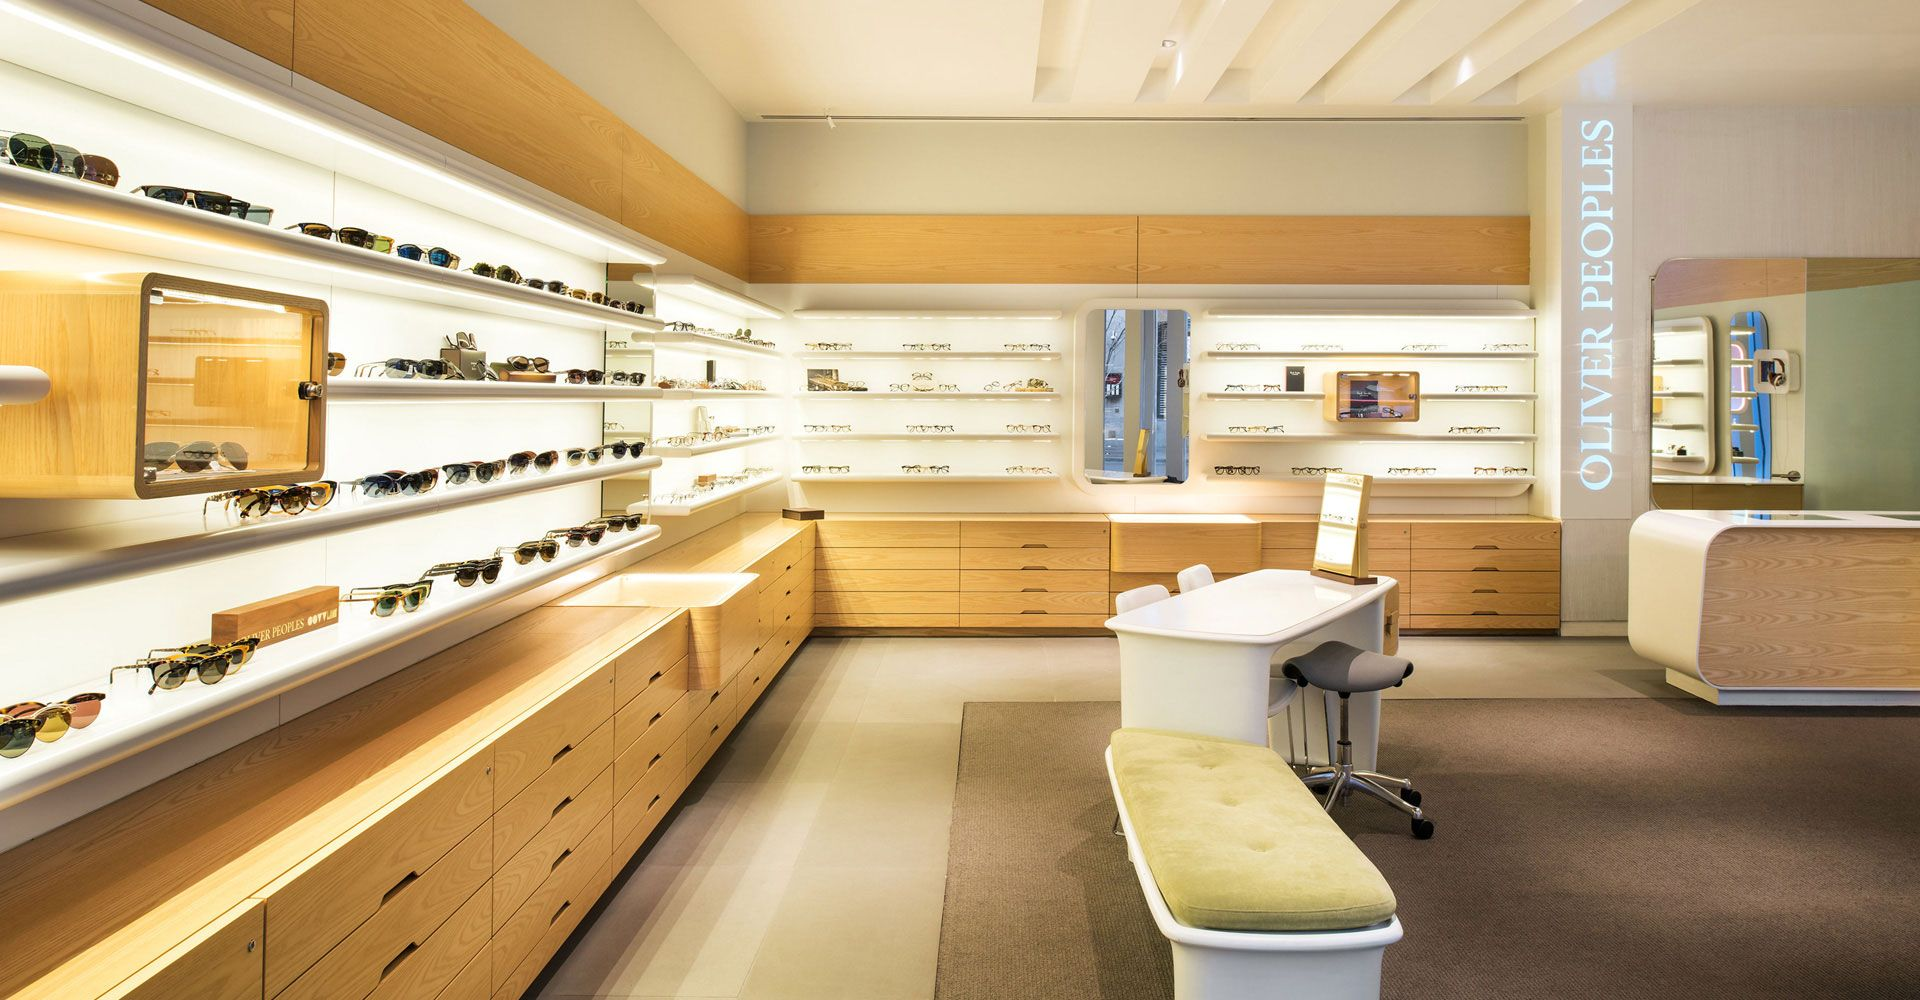 Oliver Peoples Chicago Illinois Eyewear Boutique